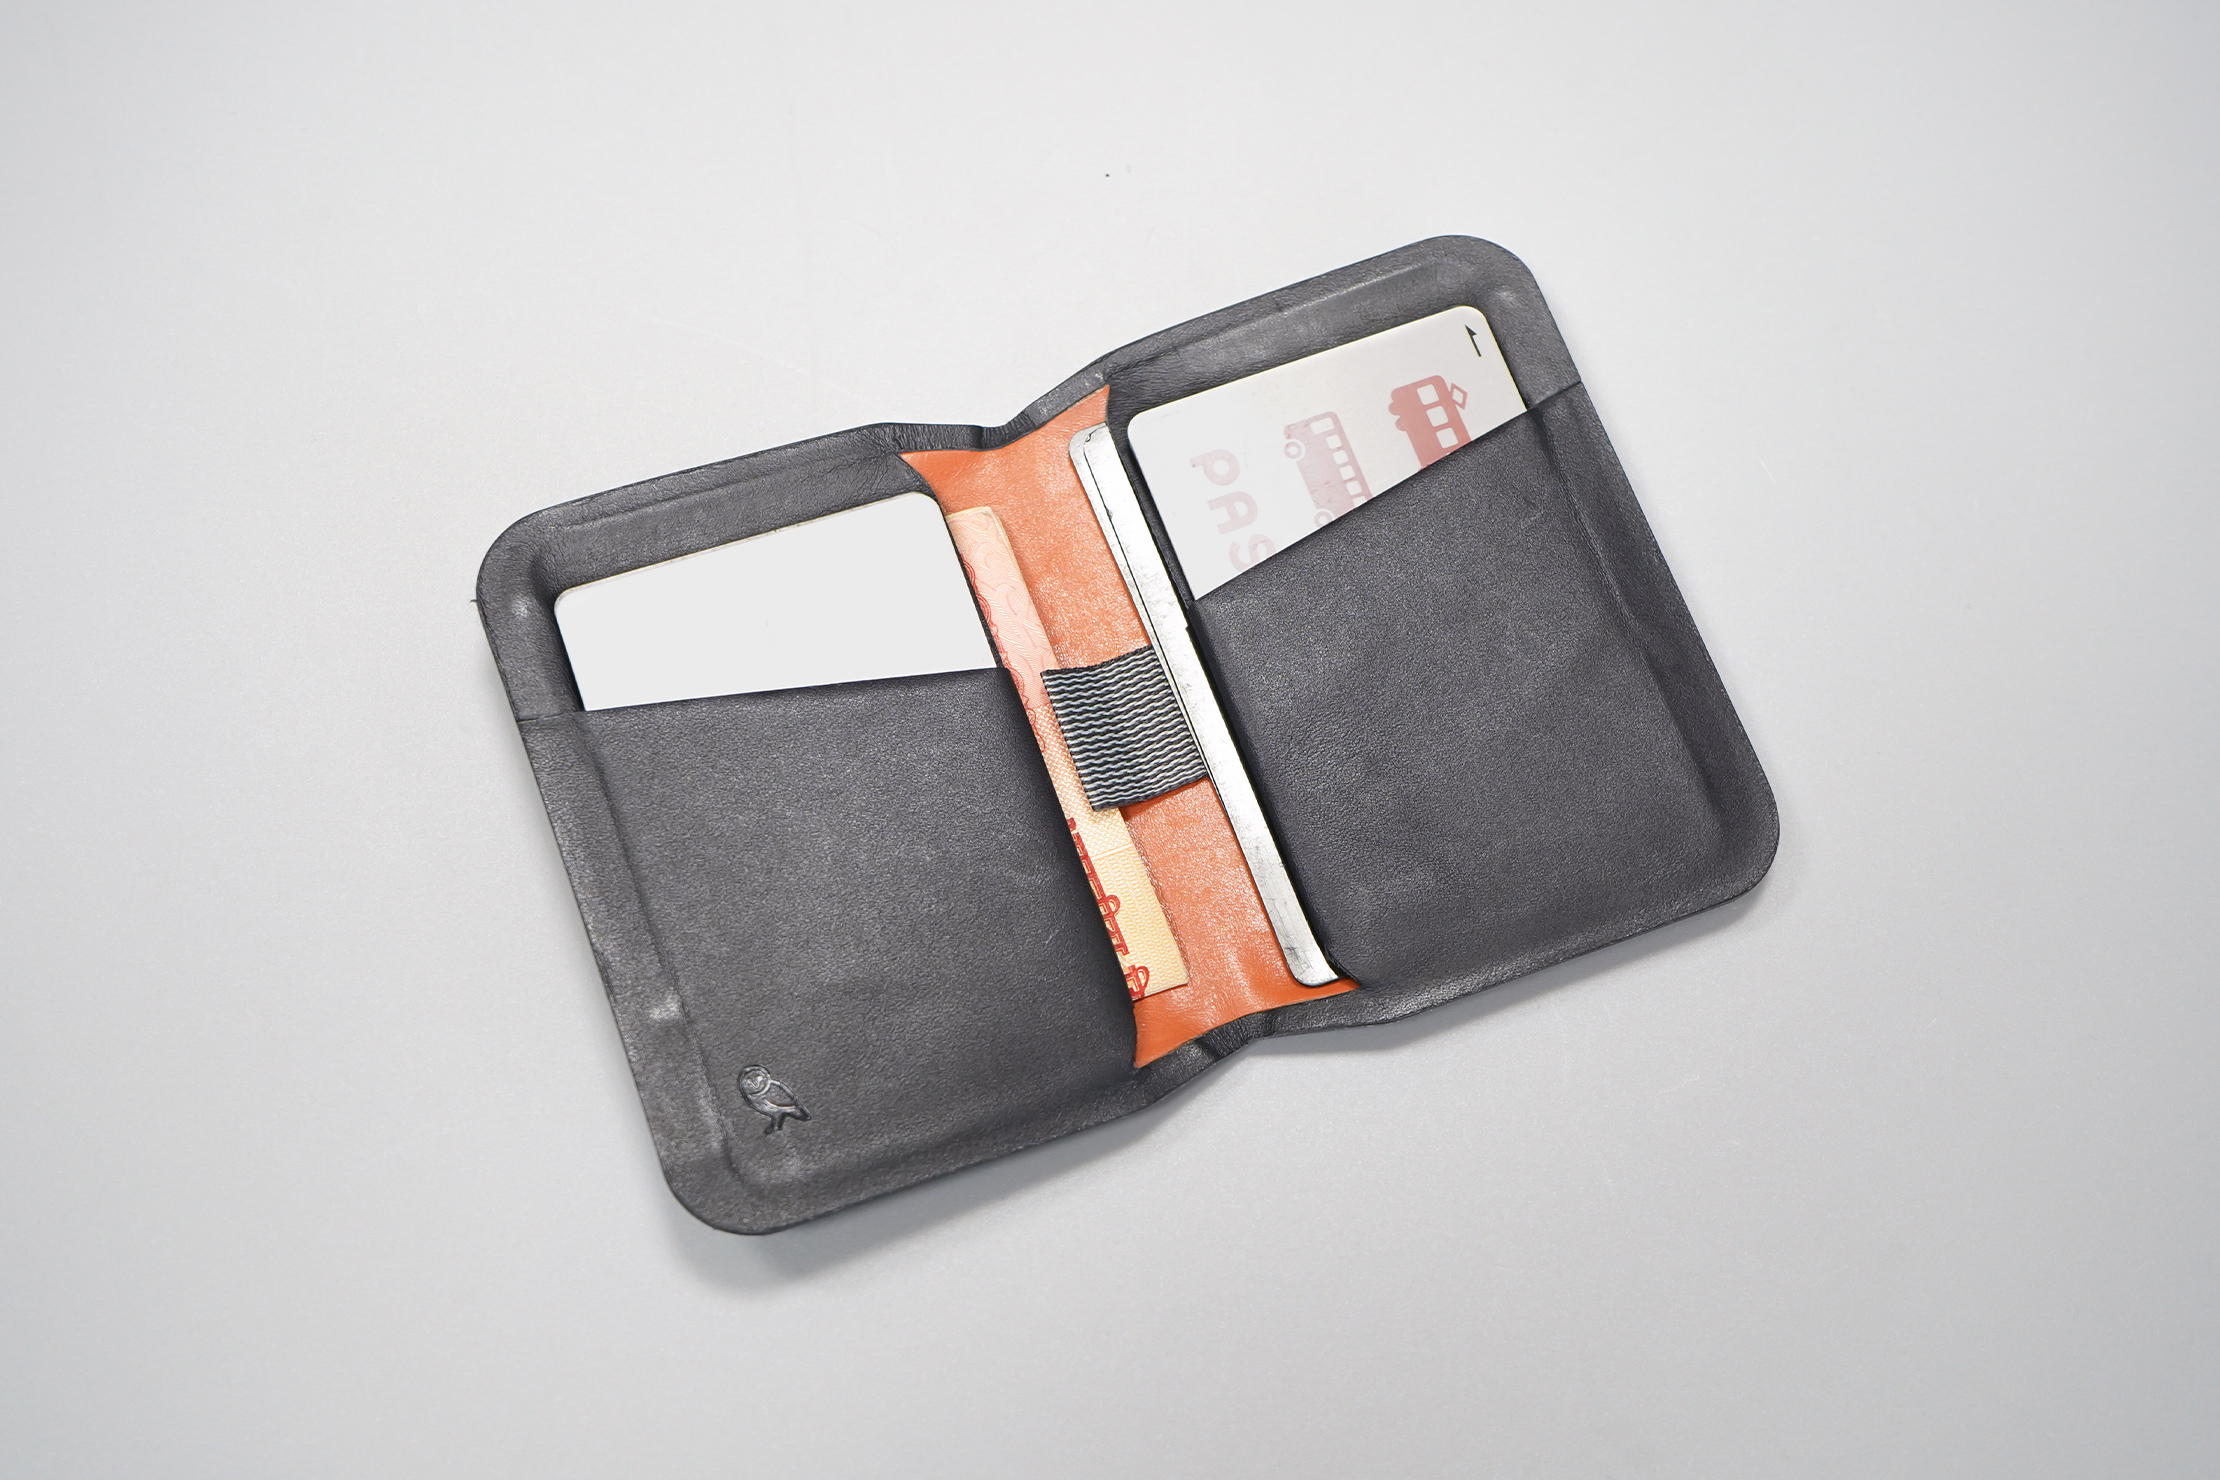 Bellroy Apex Slim Sleeve | Interior filled with six cards and six US Dollar bills